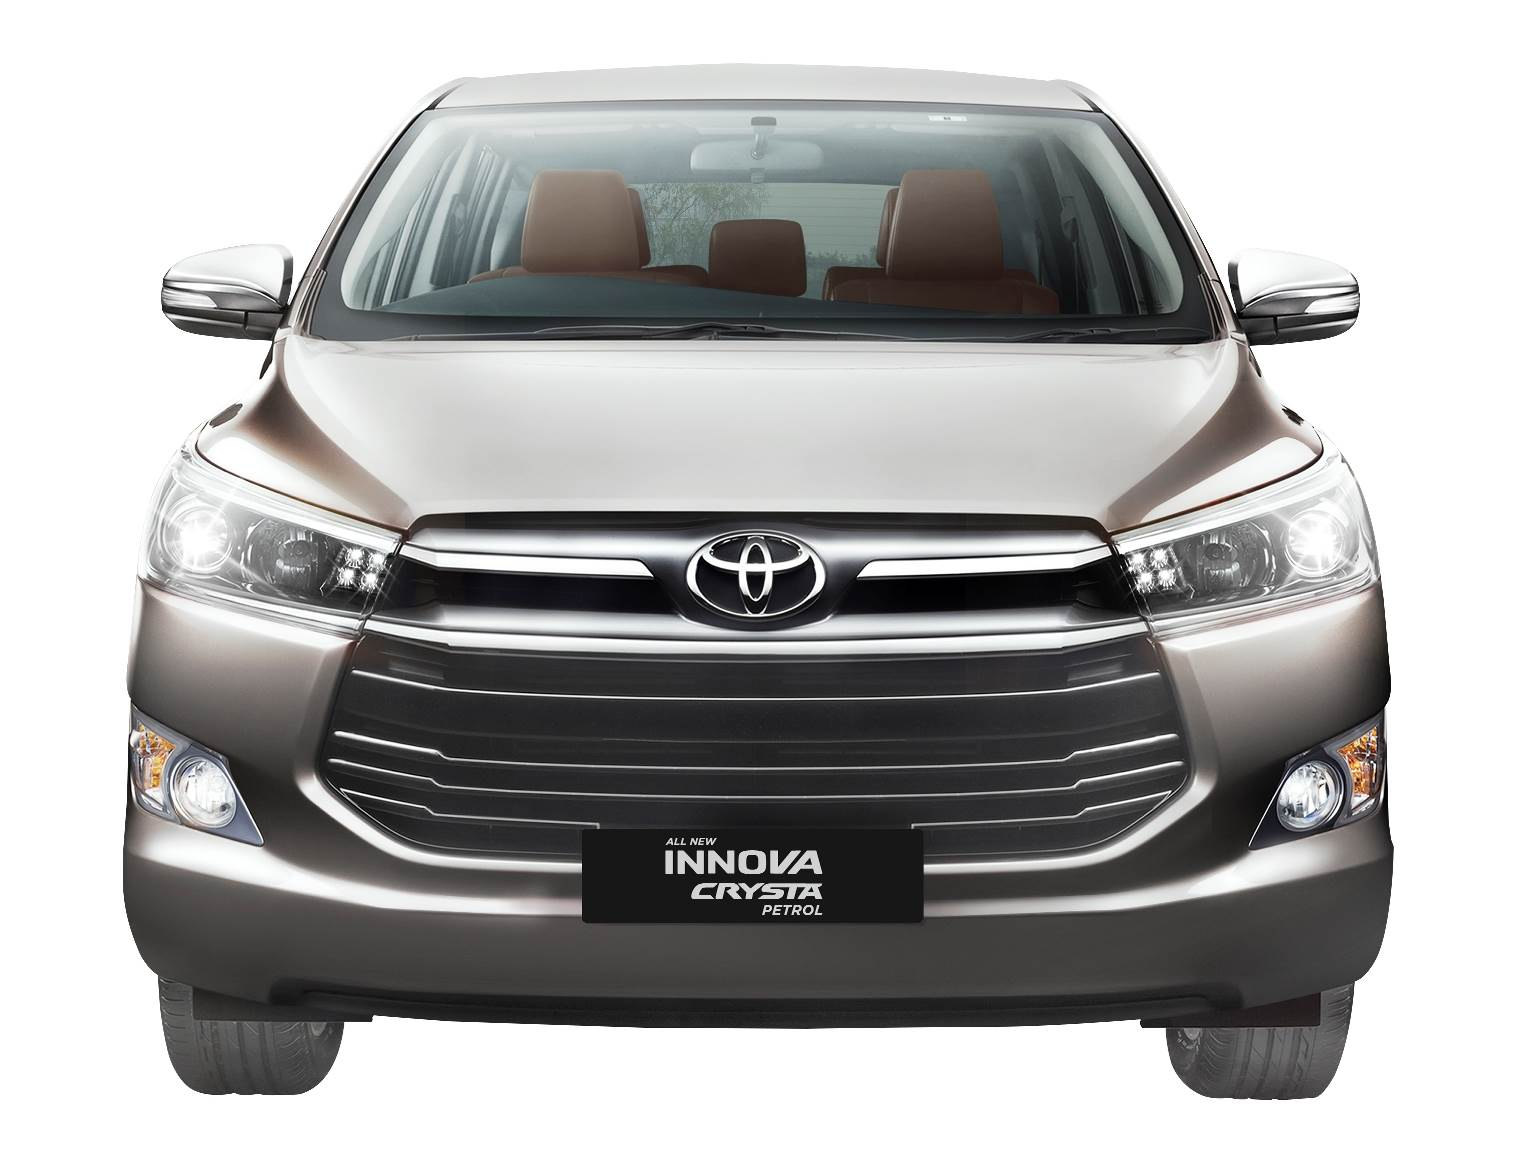 2016 Toyota Innova Crysta Petrol Launched At Rs 13 72 Lakh